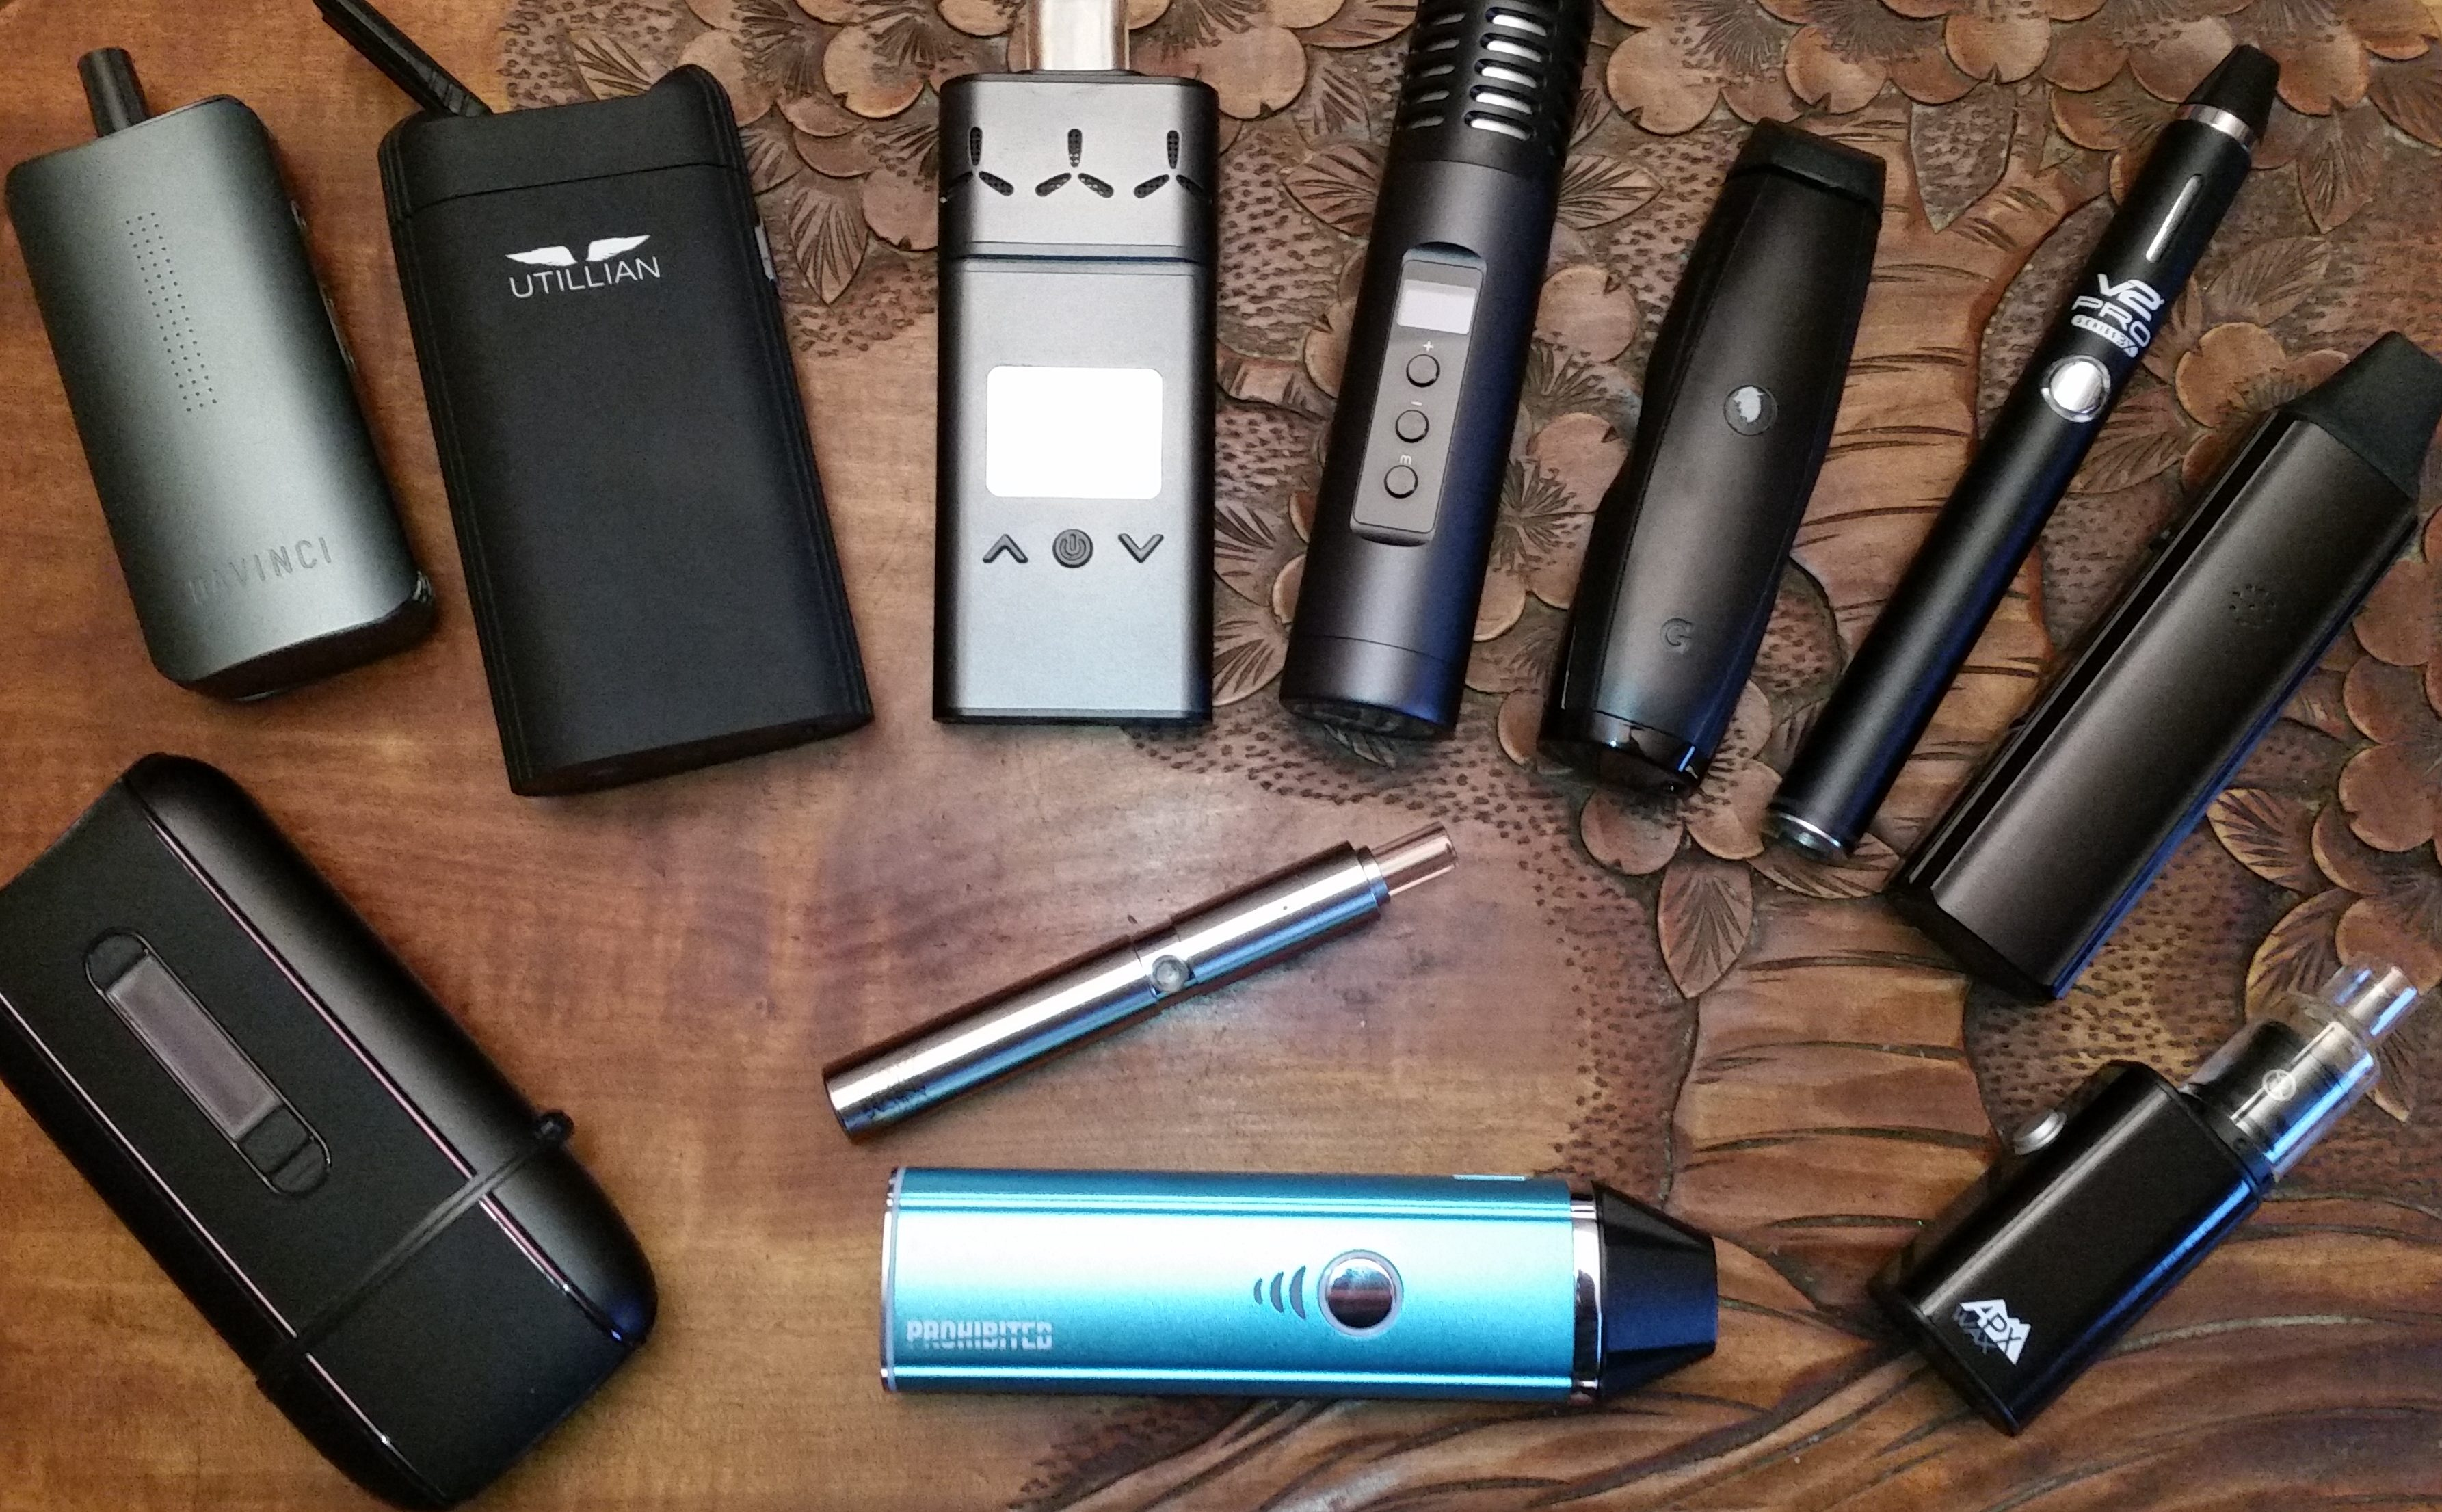 BENEFITS OF USING MARIJUANA VAPORIZERS